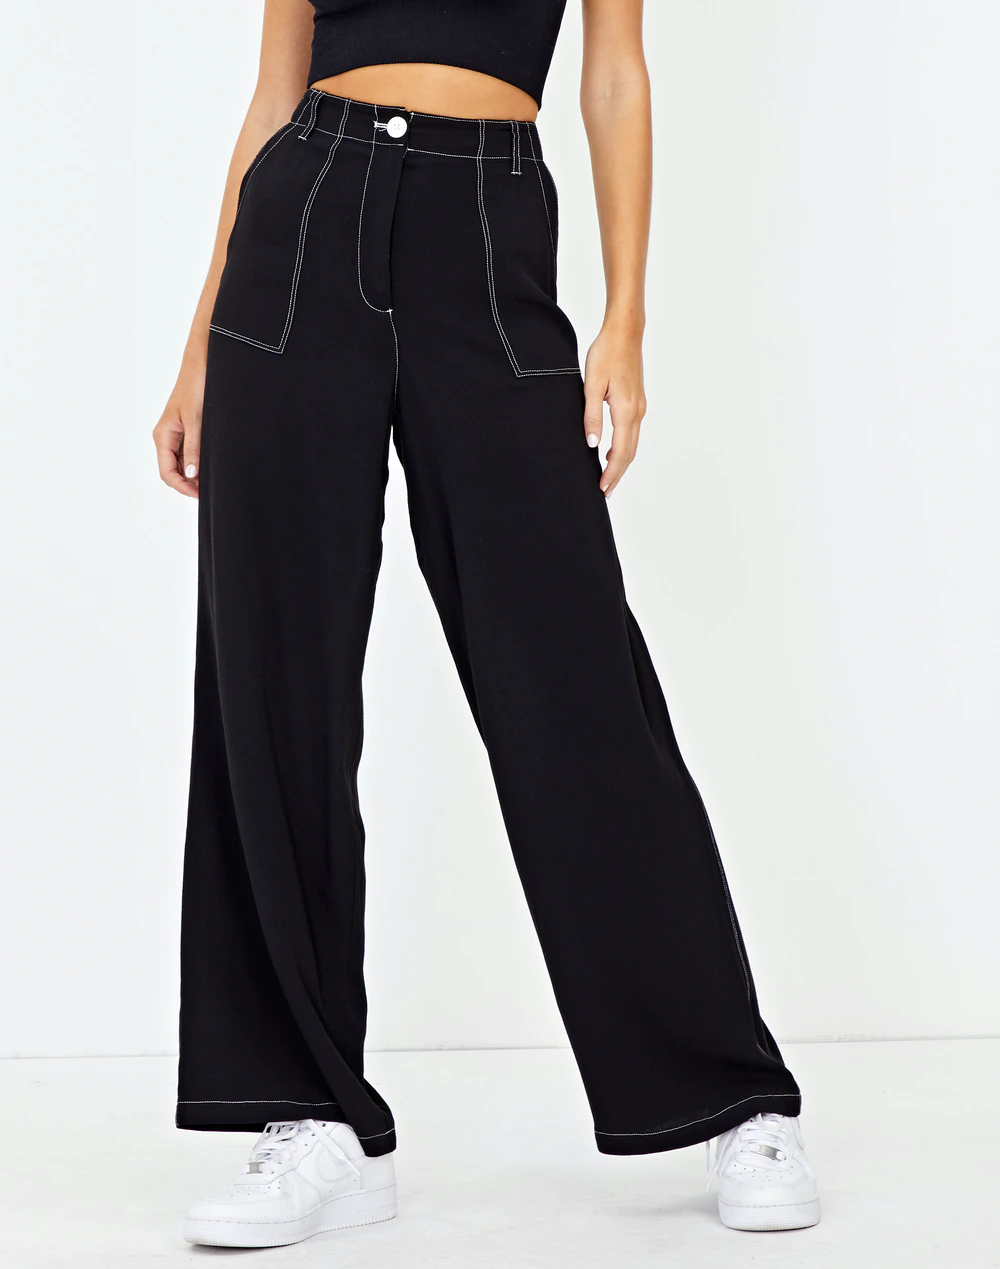 Lightweight Contrast Stitch Pant In Black Glassons Casual Dresses For Women Outfit Inspirations 2020 Casual Dress Pants [ 1269 x 1000 Pixel ]